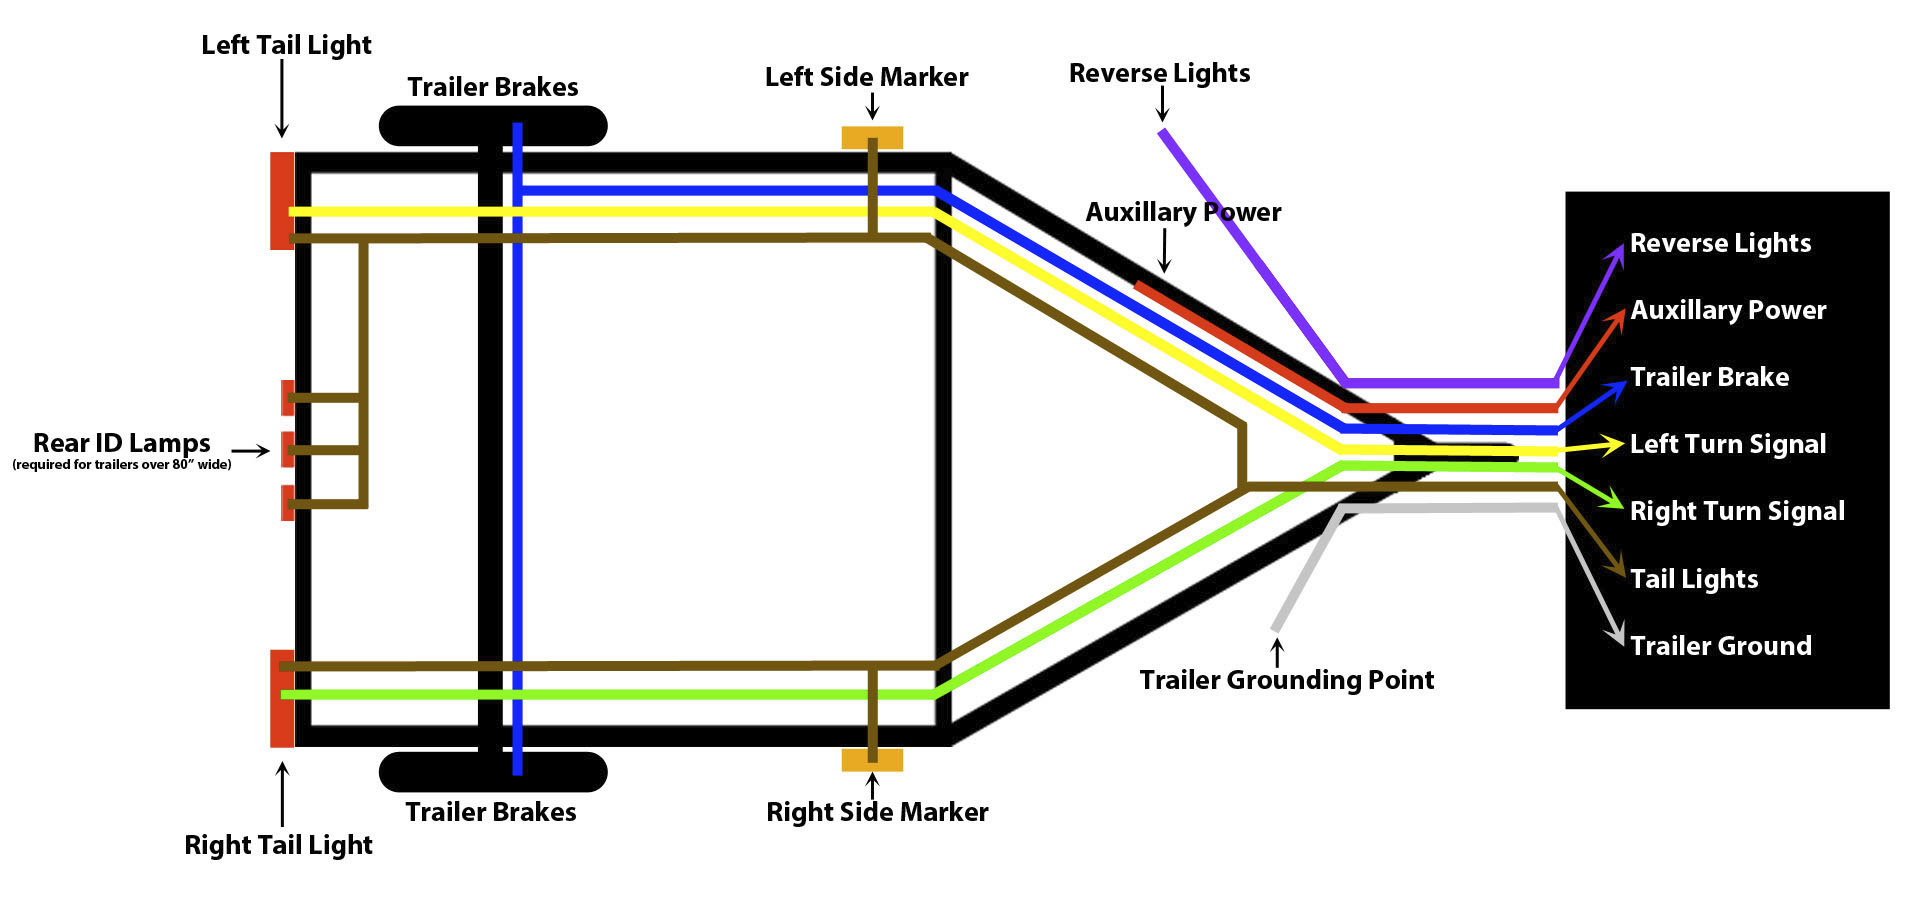 How To Wire Trailer Lights - Trailer Wiring Guide & Videos - 4 Prong Trailer Plug Wiring Diagram